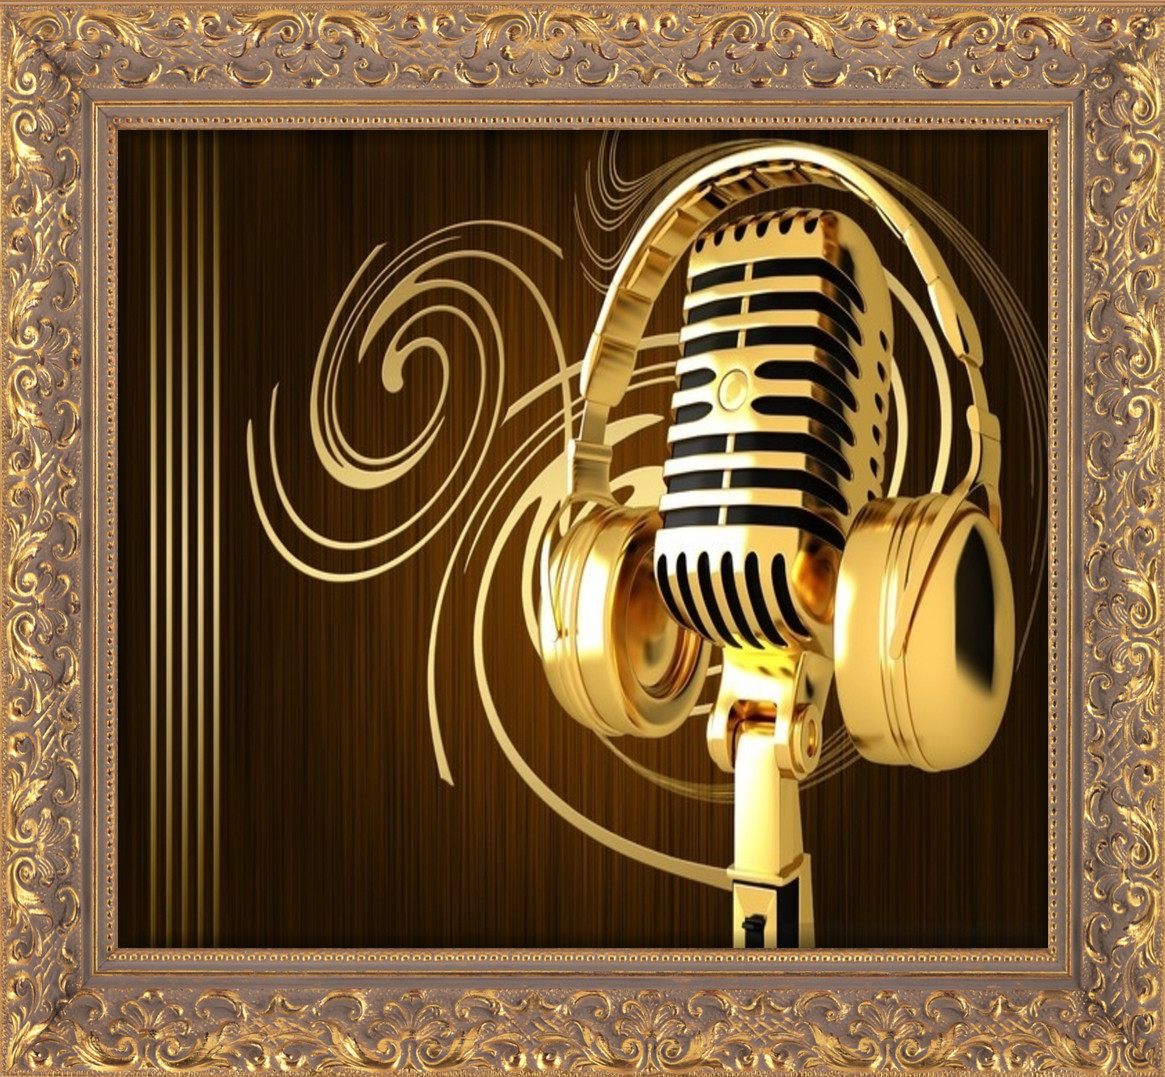 I will Publicize and Promote your Music on an International Blog.